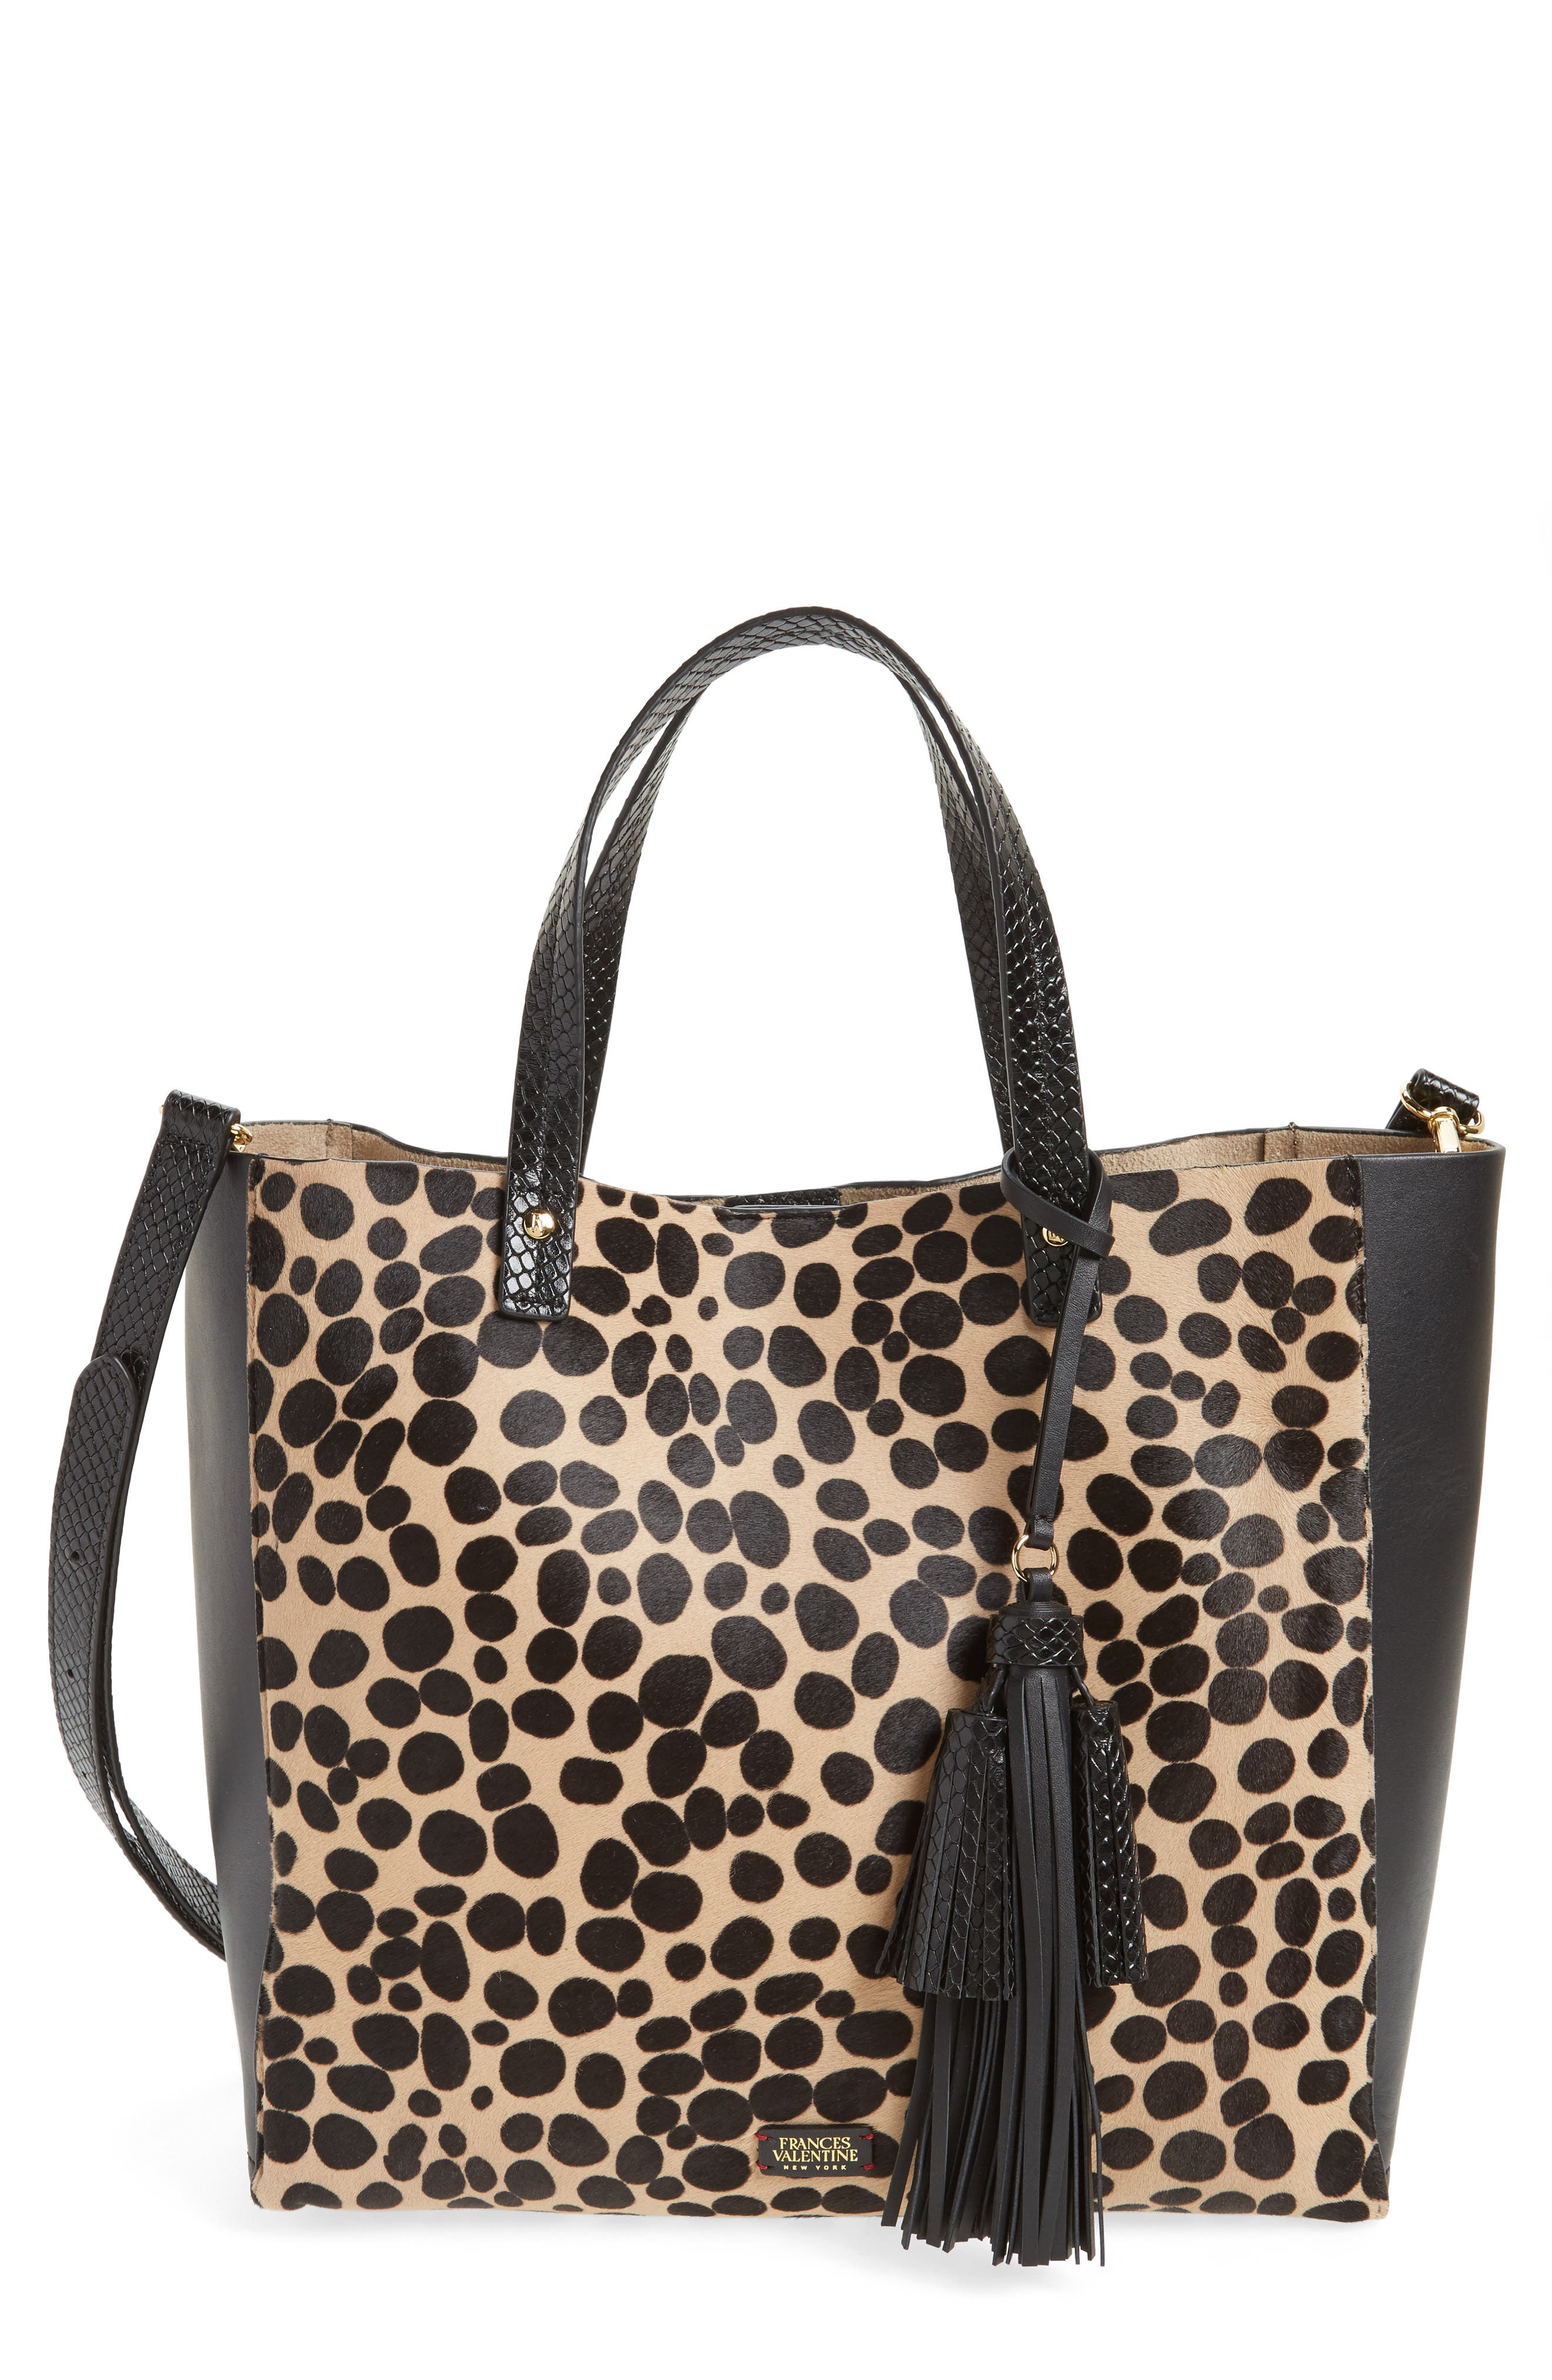 Alternate Image 1 Selected - Frances Valentine Genuine Calf Hair & Leather Convertible Tote